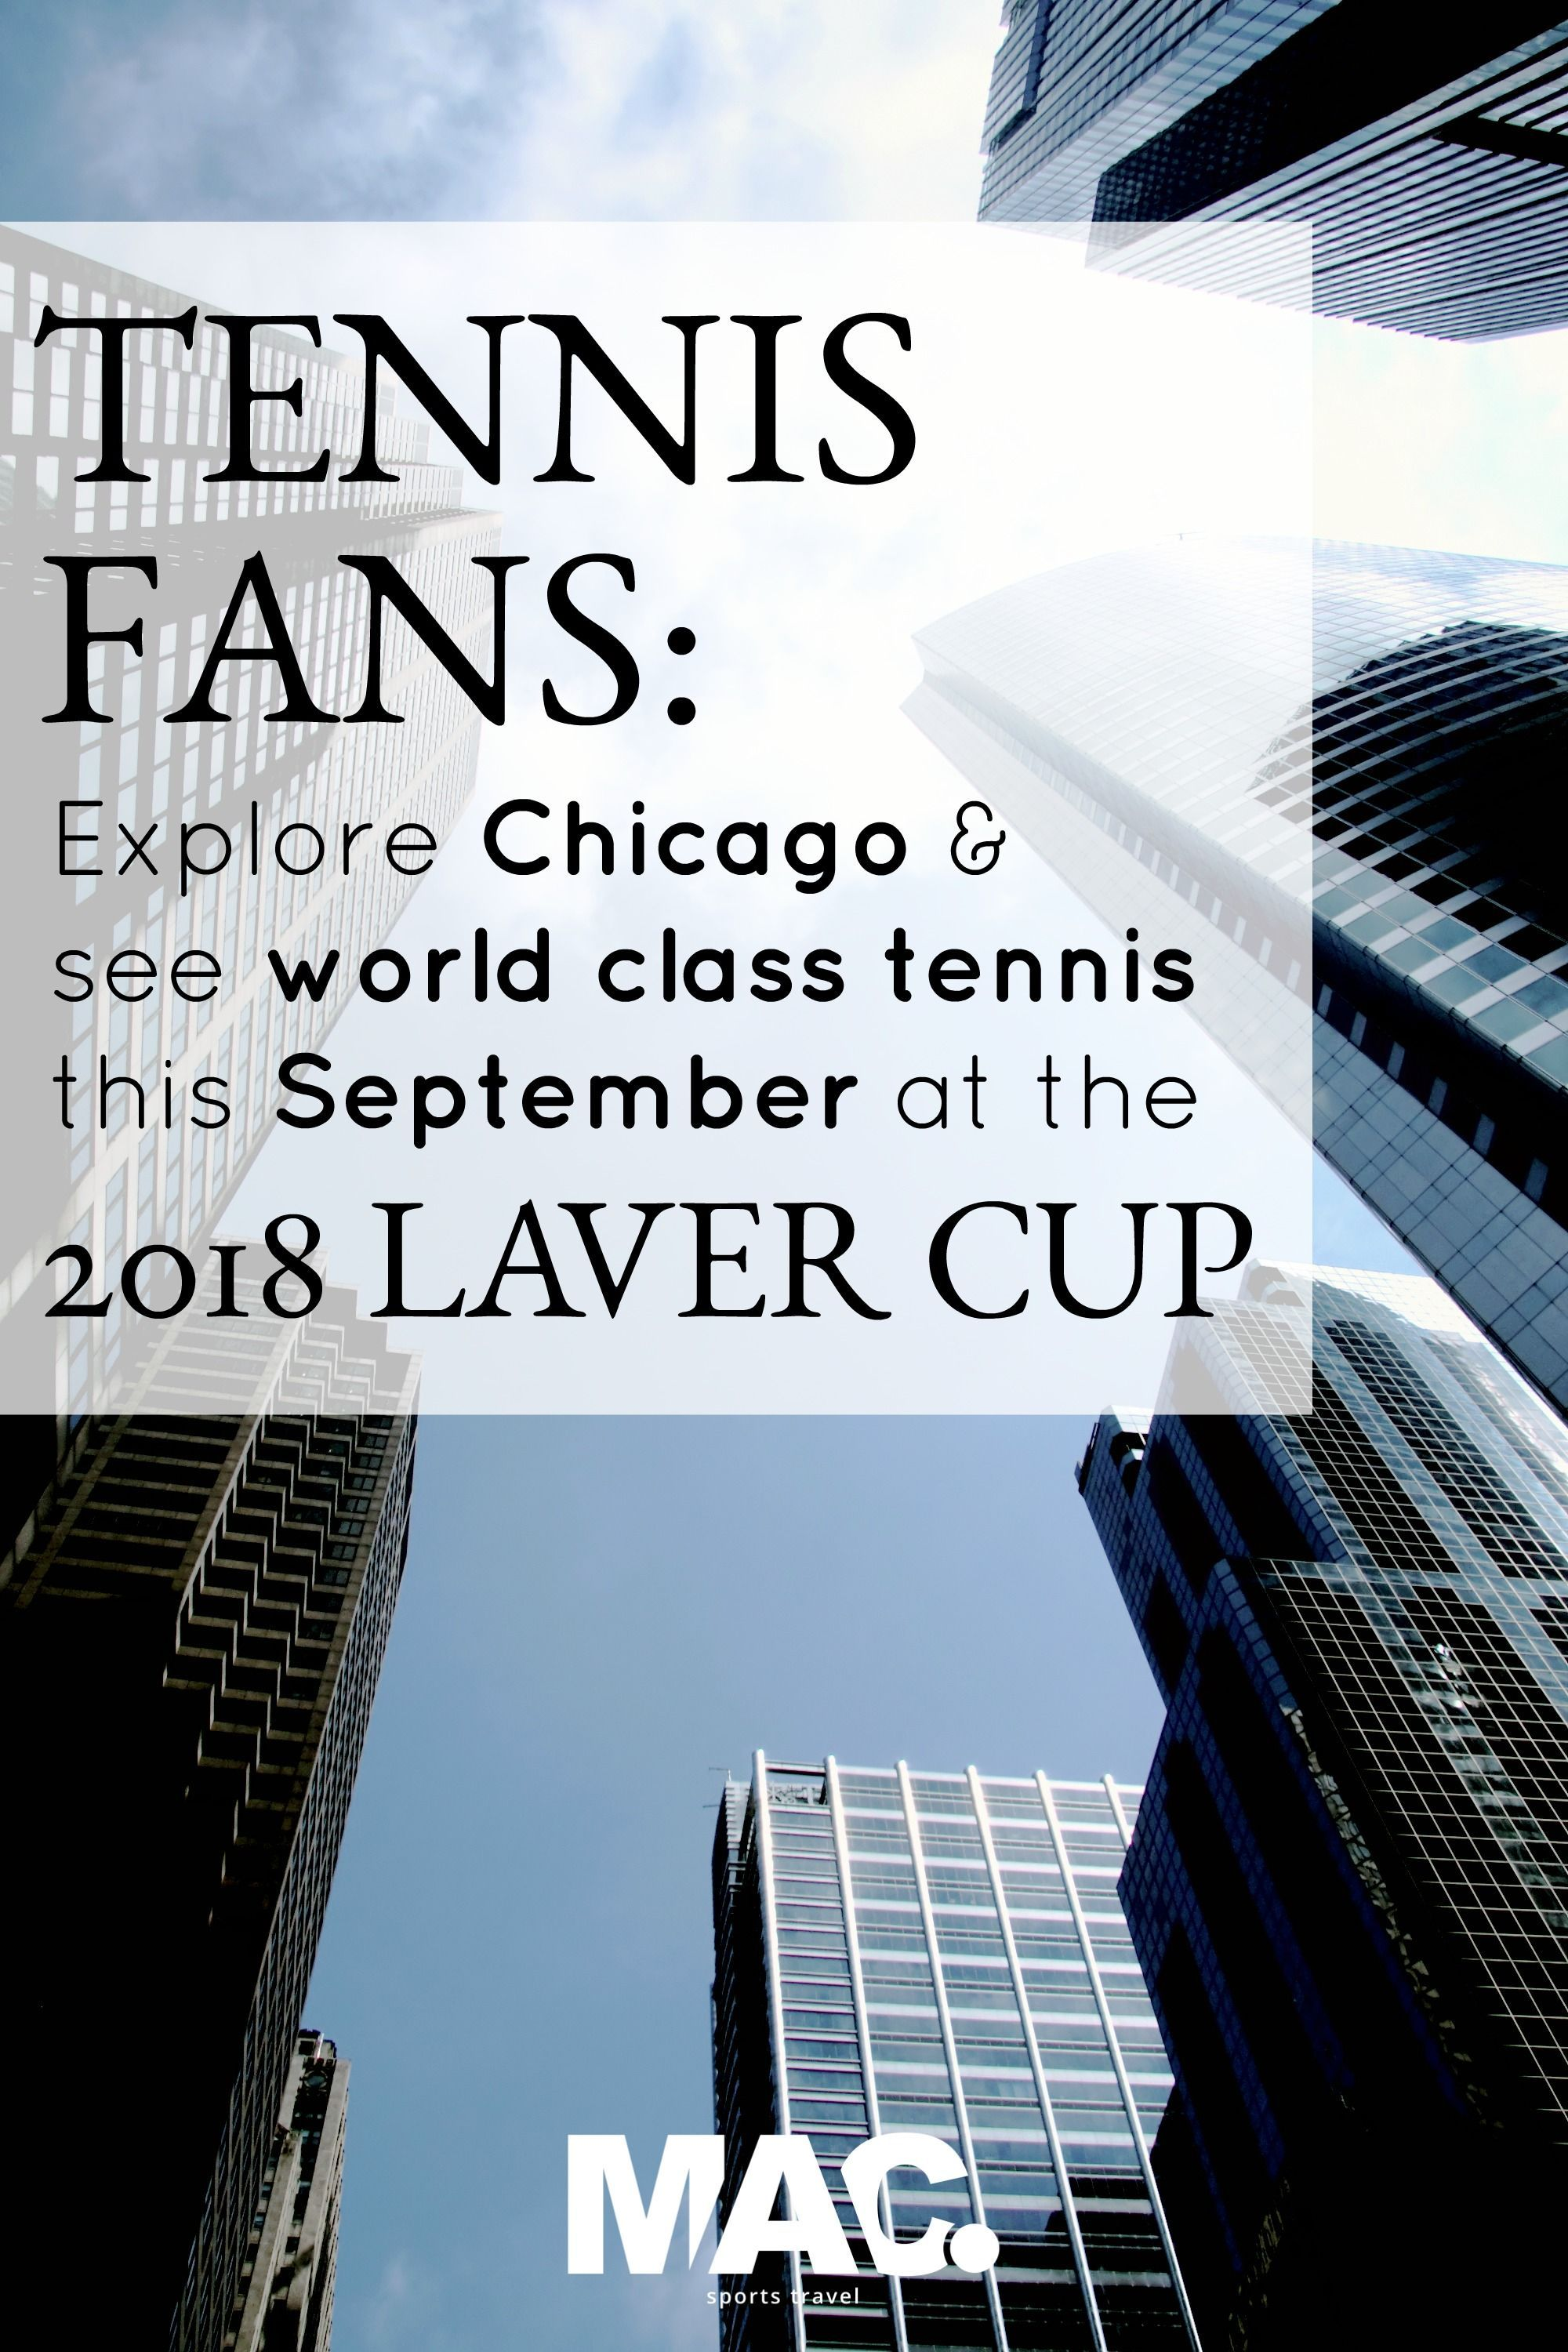 Remember Laver Cup 2017 Federer Nadal Fedal Be There In 2018 When The Laver Cup Meets Chicago Watch Europe Take O Chicago Vacation Visit Chicago Chicago